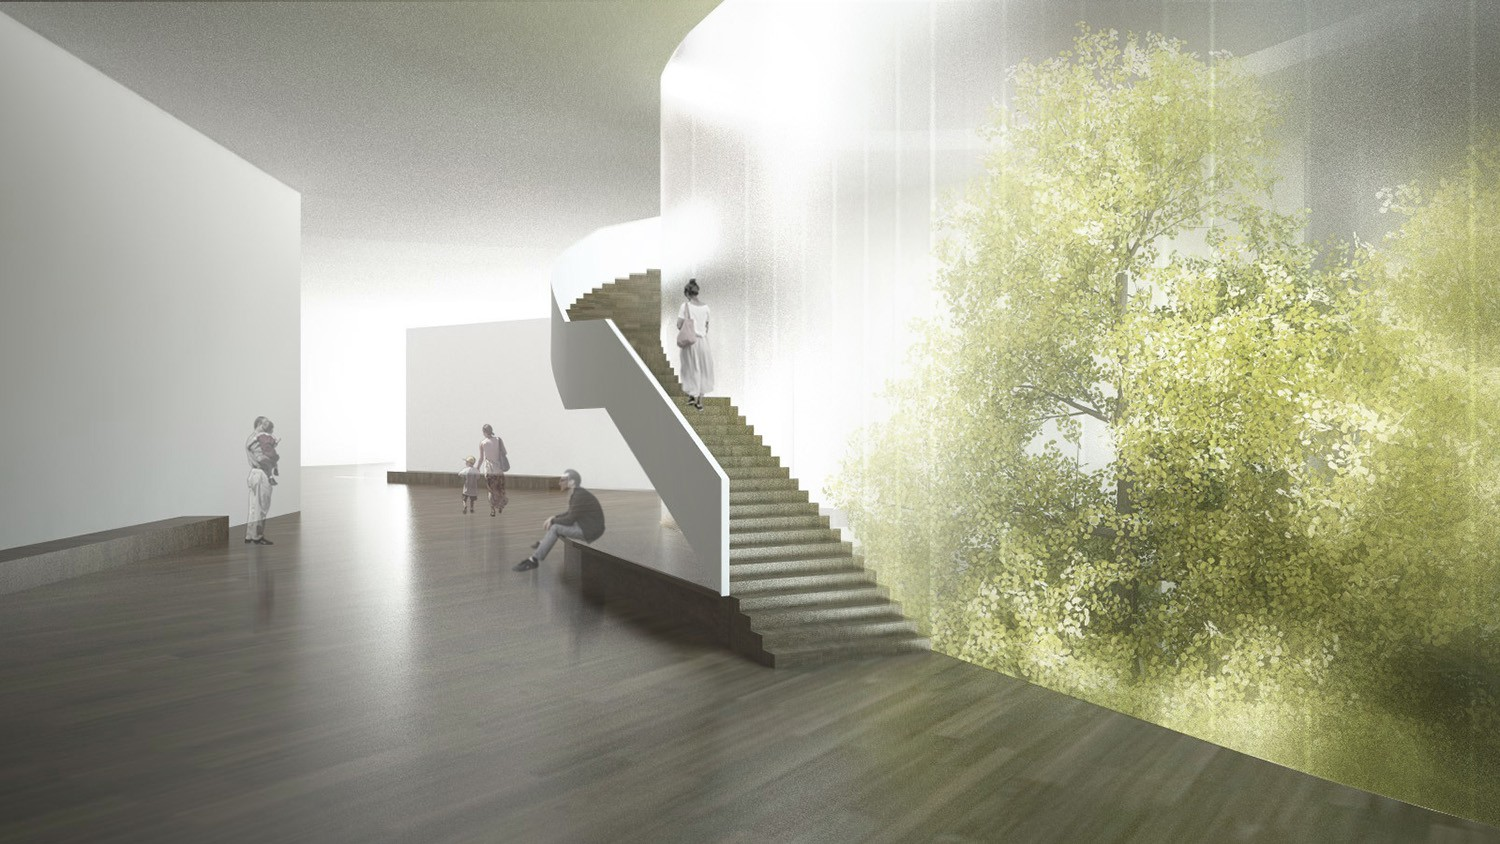 https://s3.us-east-2.amazonaws.com/steven-holl/uploads/projects/project-images/StevenHollArchitects_COFCO_Shanghai - Cultural Center - Interior 2_WH.jpg